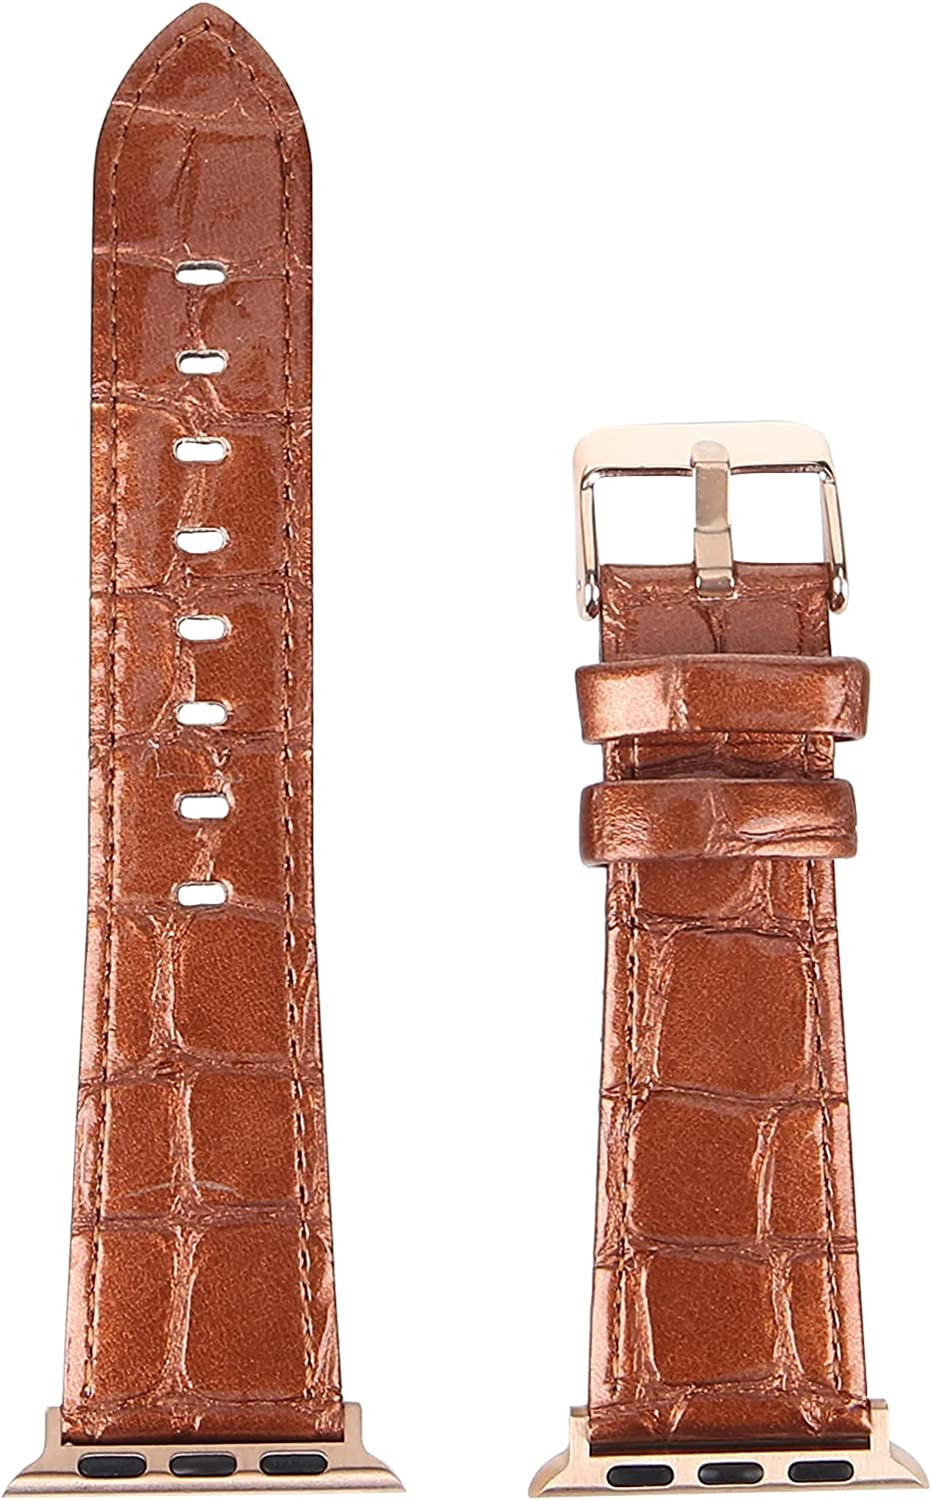 CYHPQY Leather Watch Band Alligator Grain Calfskin Replacement Strap Stainless Steel Buckle Bracelet for Men Women - Compatible with All Apple Watches - 38mm, 40mm, 42mm, 44mm